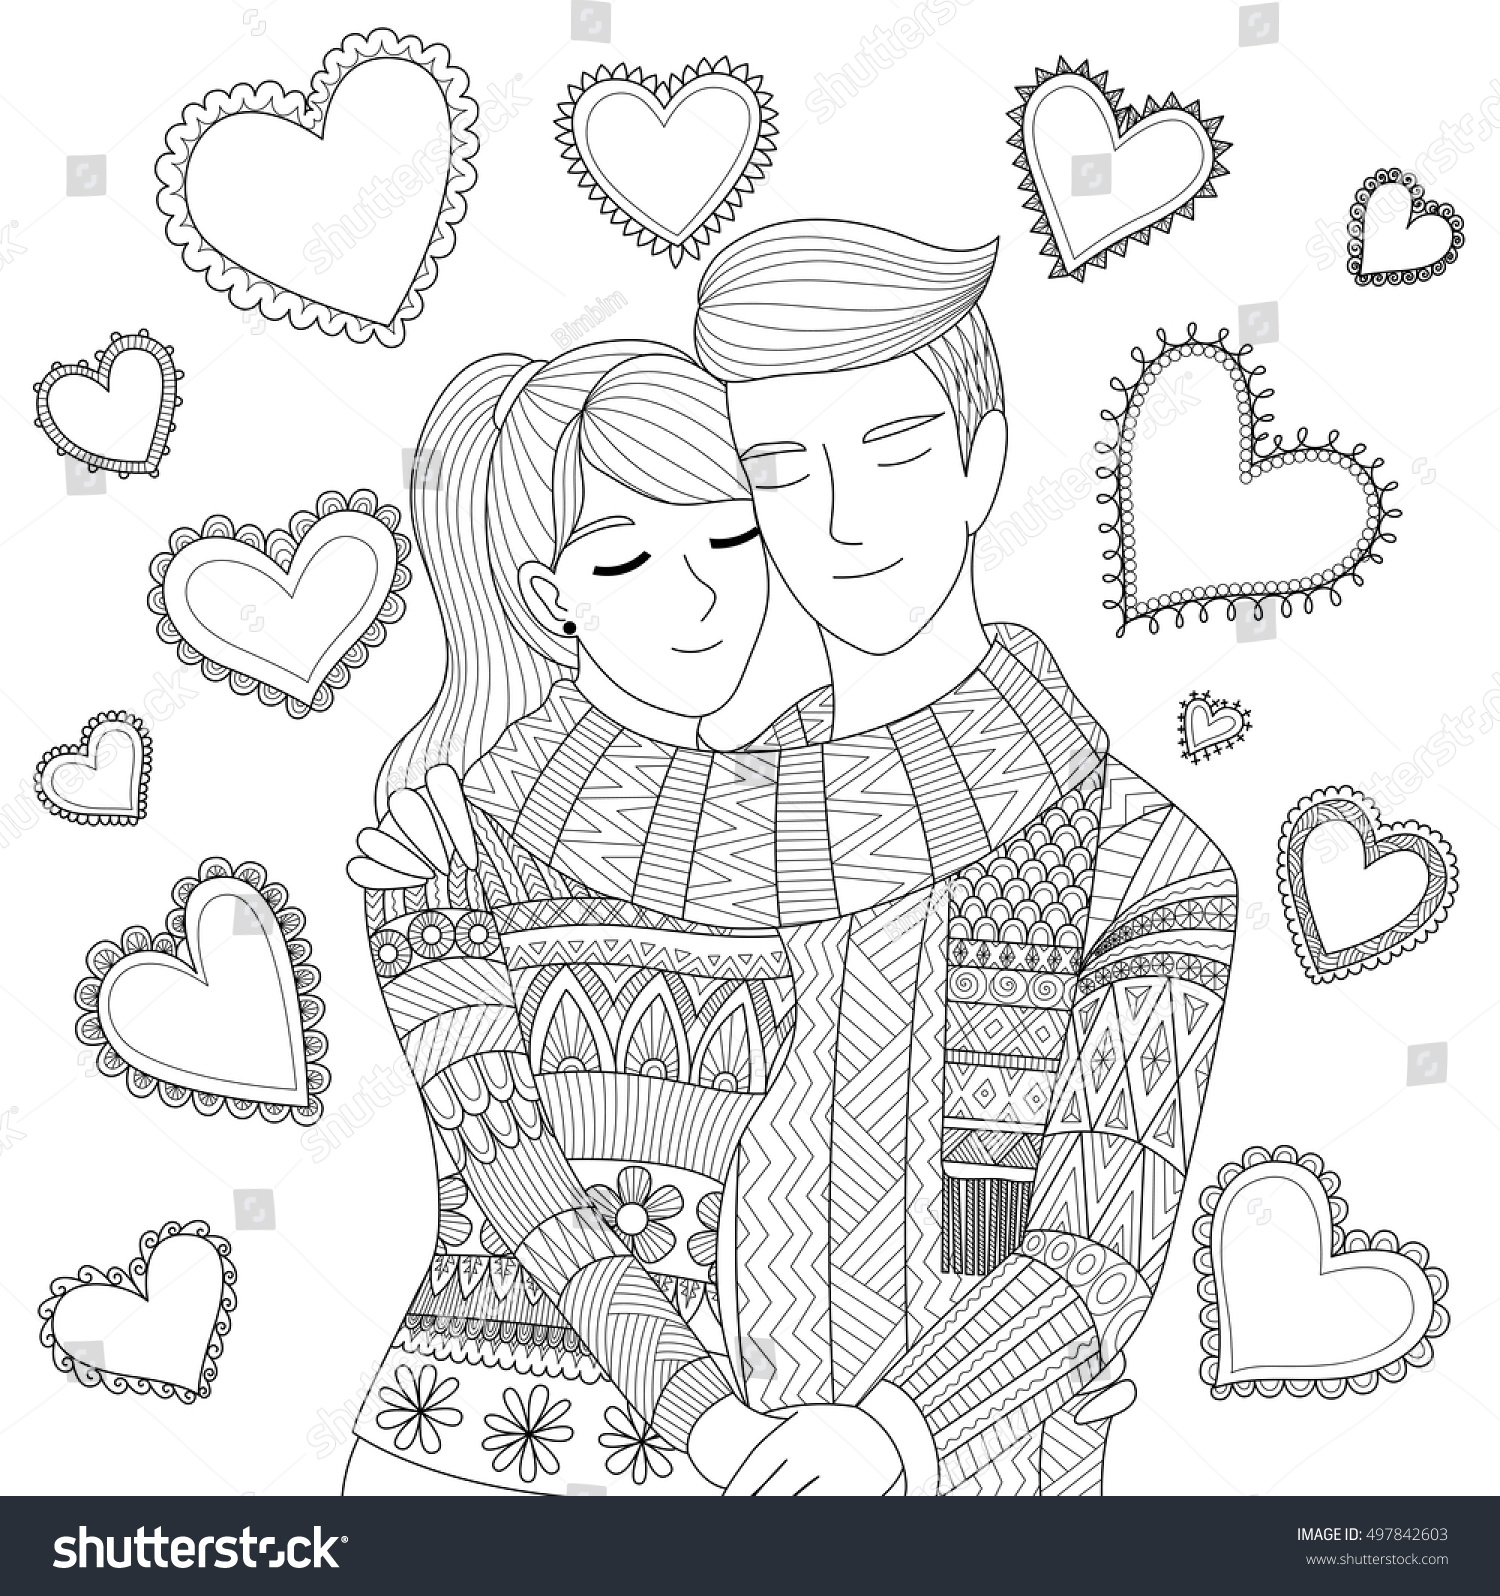 Love Each Other Coloring Page: Zendoodle Design Couple Holding Each Other Stock Vector